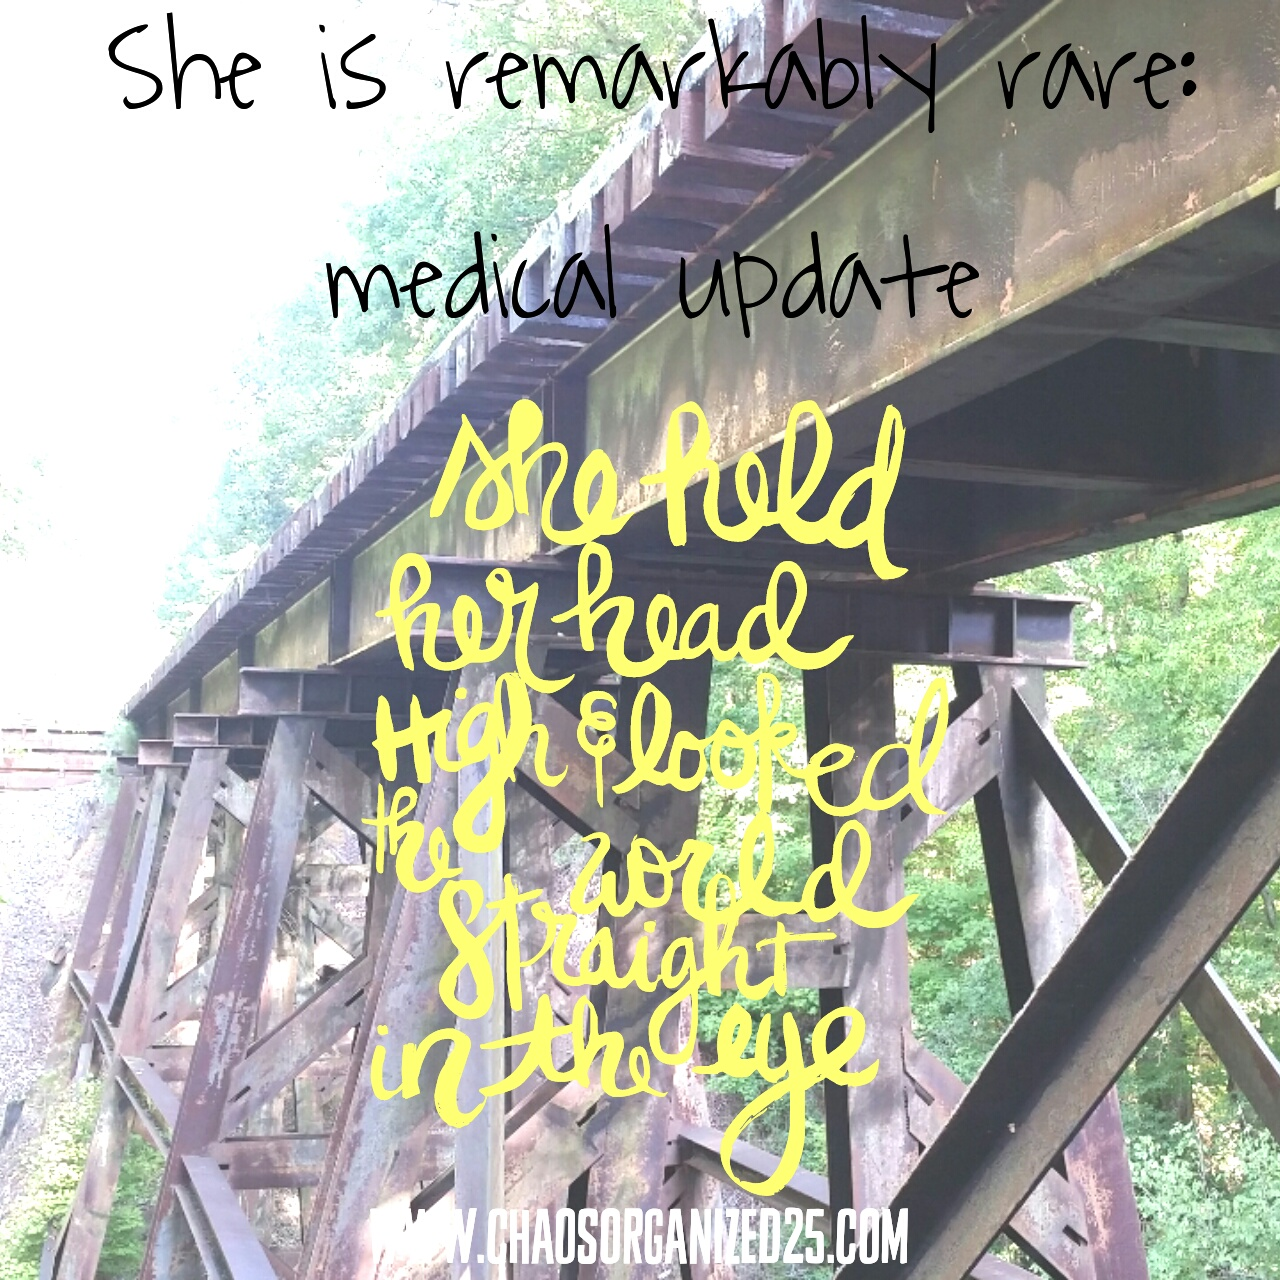 She is Remarkably Rare: Medical Update